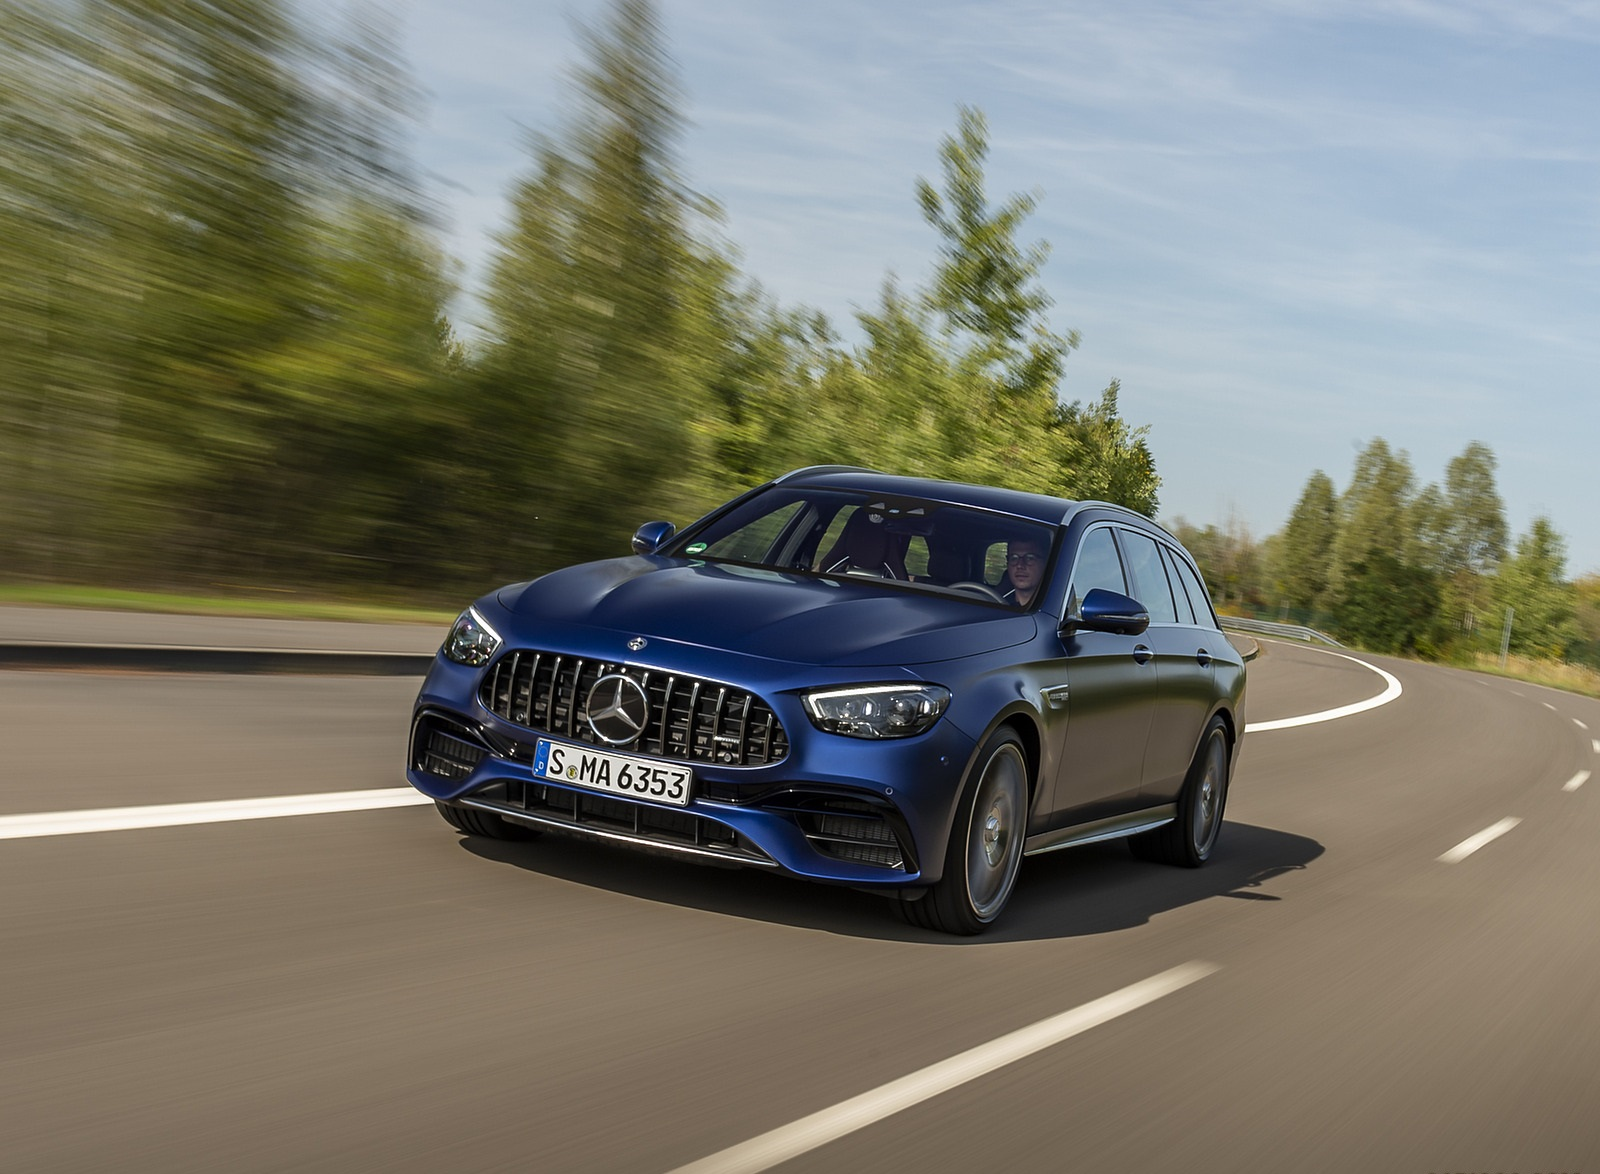 2021 Mercedes-AMG E 63 S Estate 4MATIC+ (Color: Designo Magno Brilliant Blue) Front Three-Quarter Wallpapers (1)